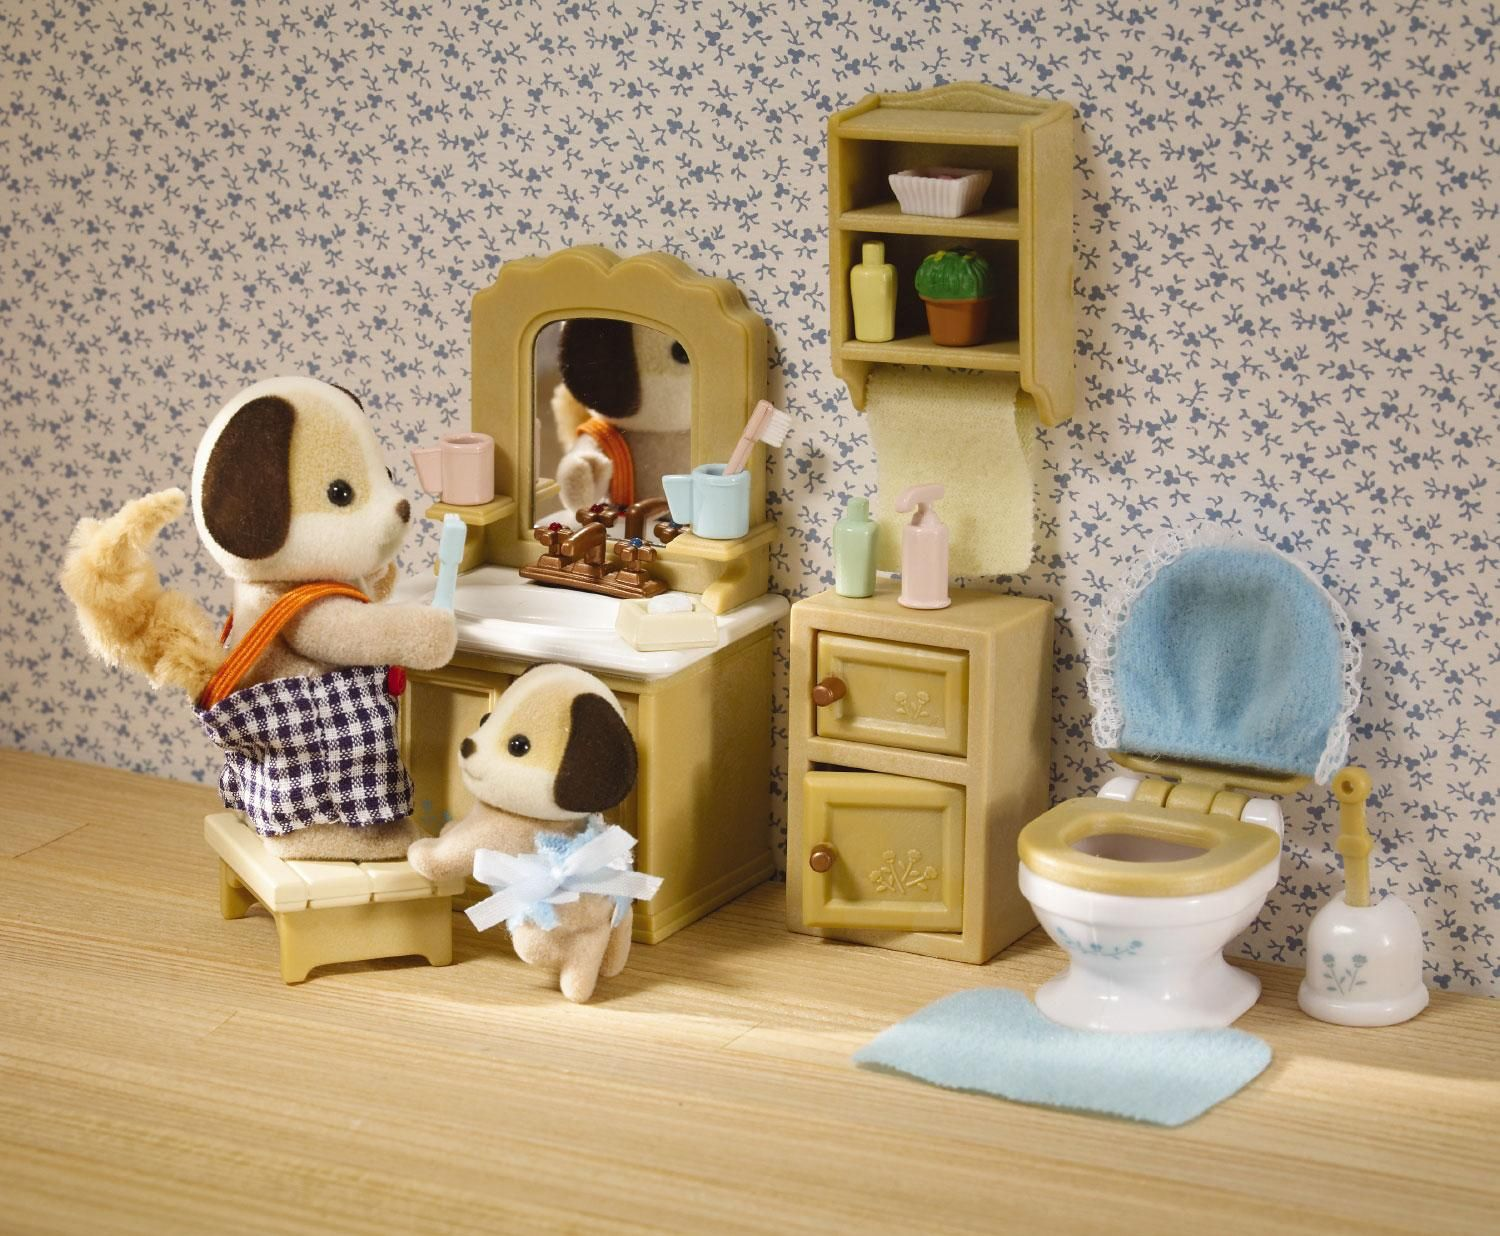 Calico Critters Deluxe Bathroom Set Furniture